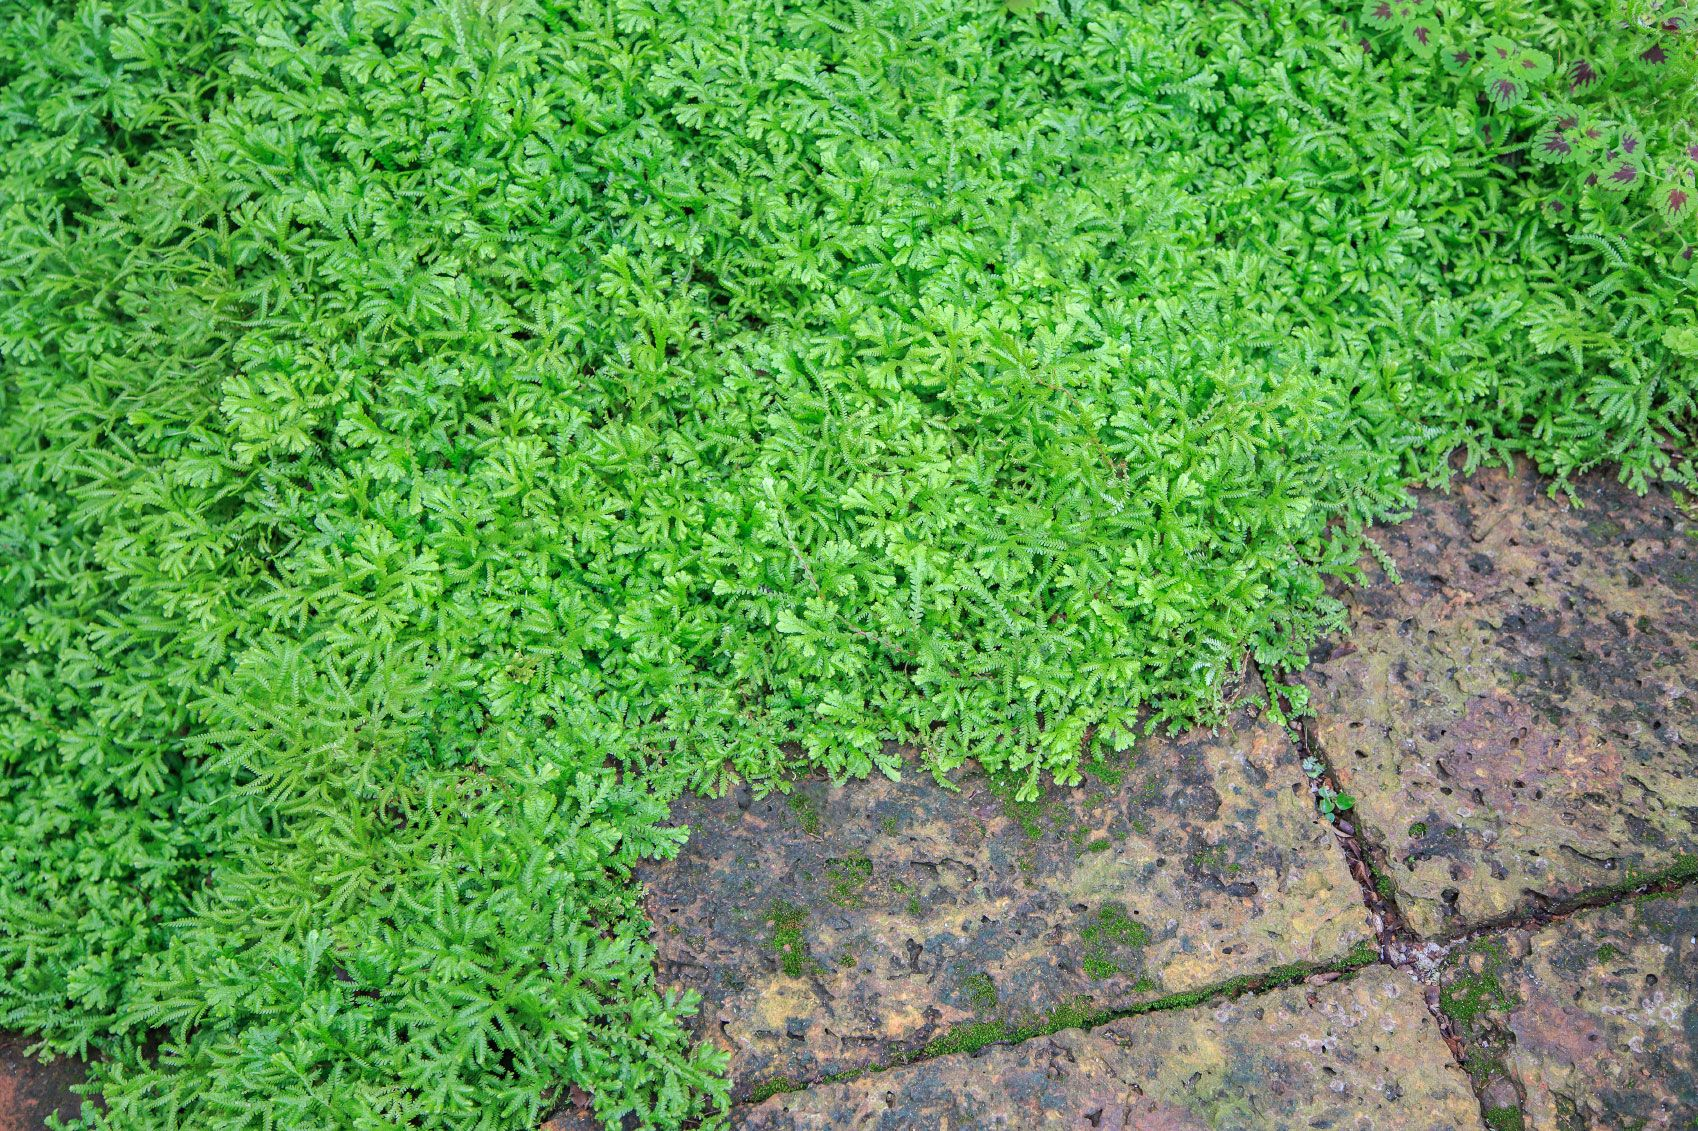 Spike moss plants, or club moss, are not true mosses but very basic vascular plants. Can you grow spike moss? You certainly can, and it makes an excellent ground cover but needs consistent moisture to remain green. Learn more in this article.